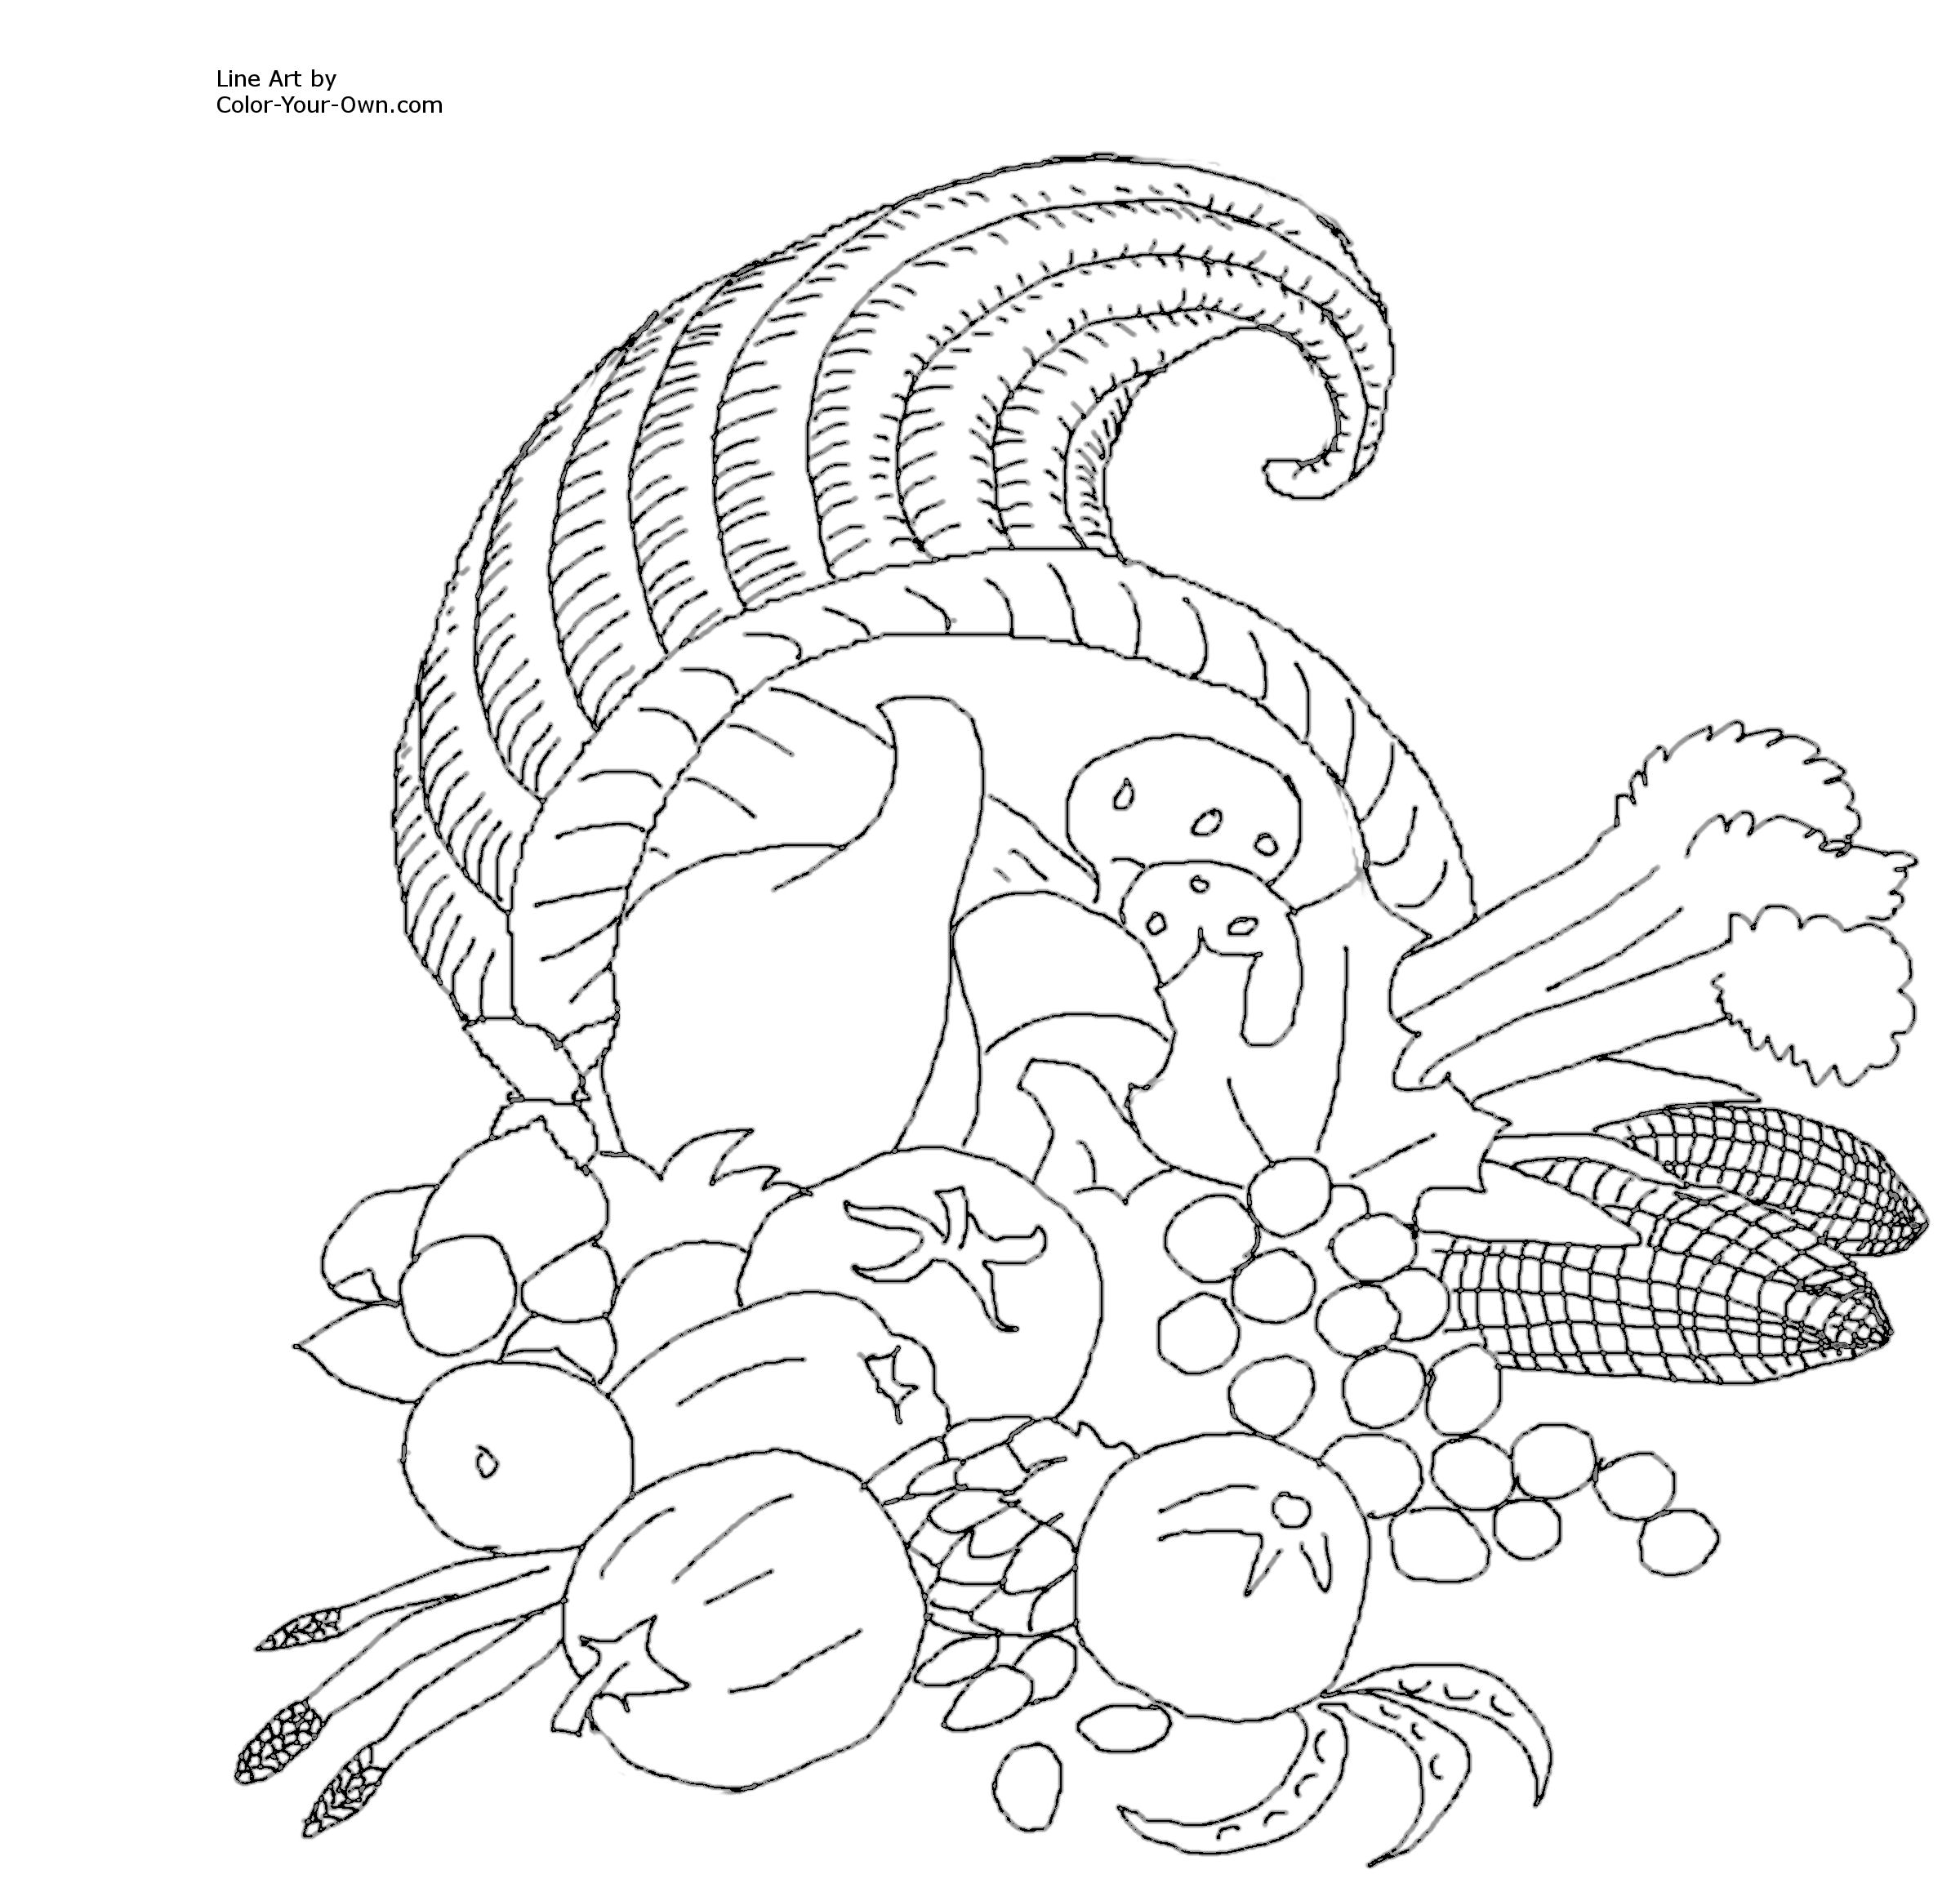 Printable Cornucopia Coloring Page Coloring Pages Cornucopia Printable Coloring Pages